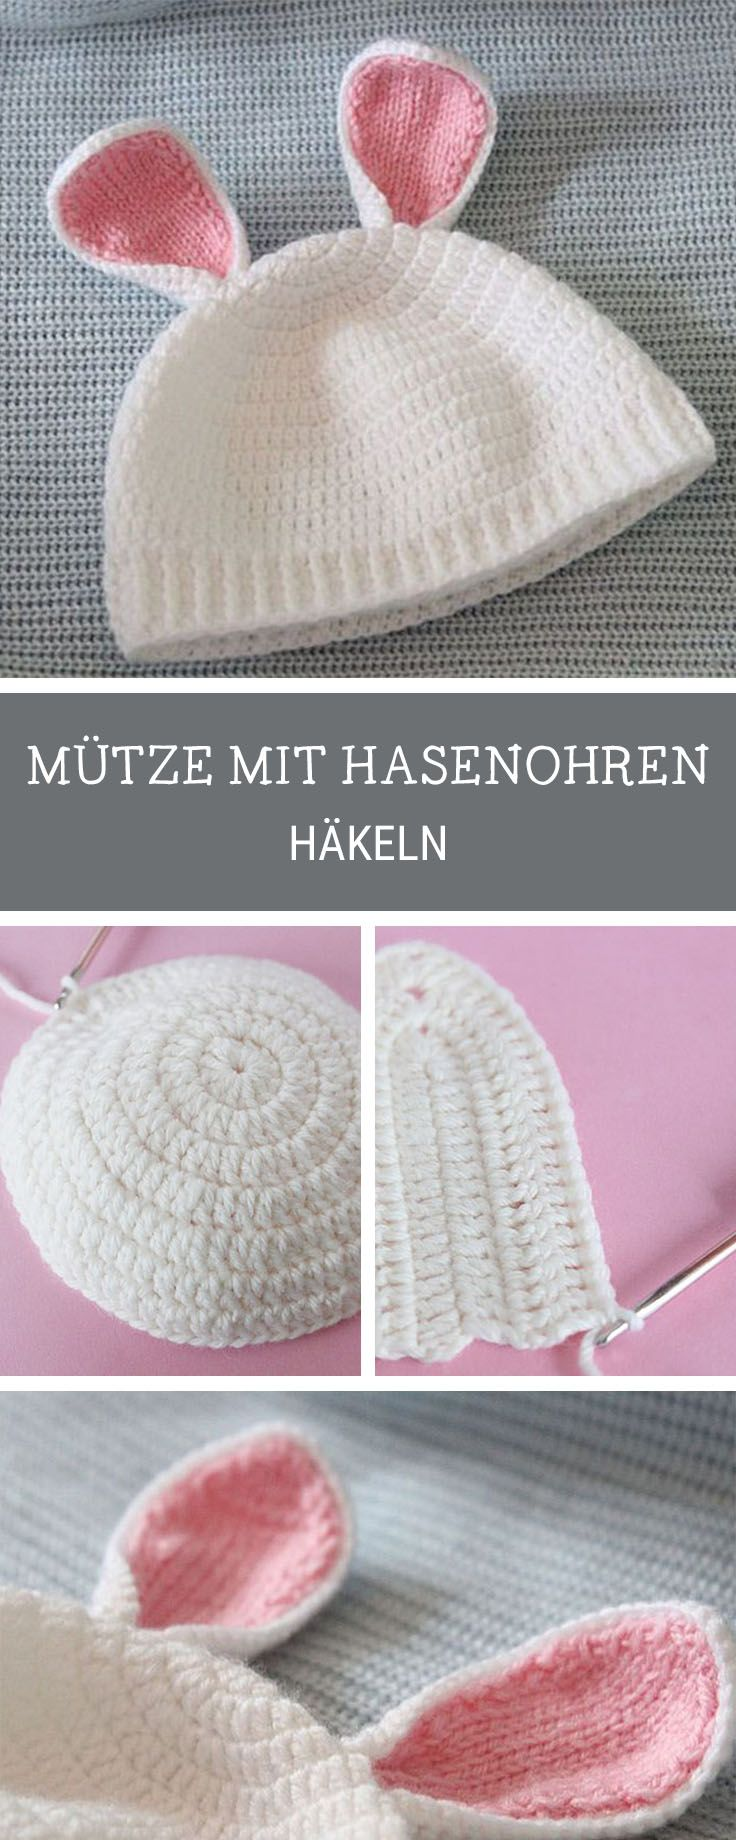 439 best DIY | crochet images on Pinterest | Crochet patterns ...